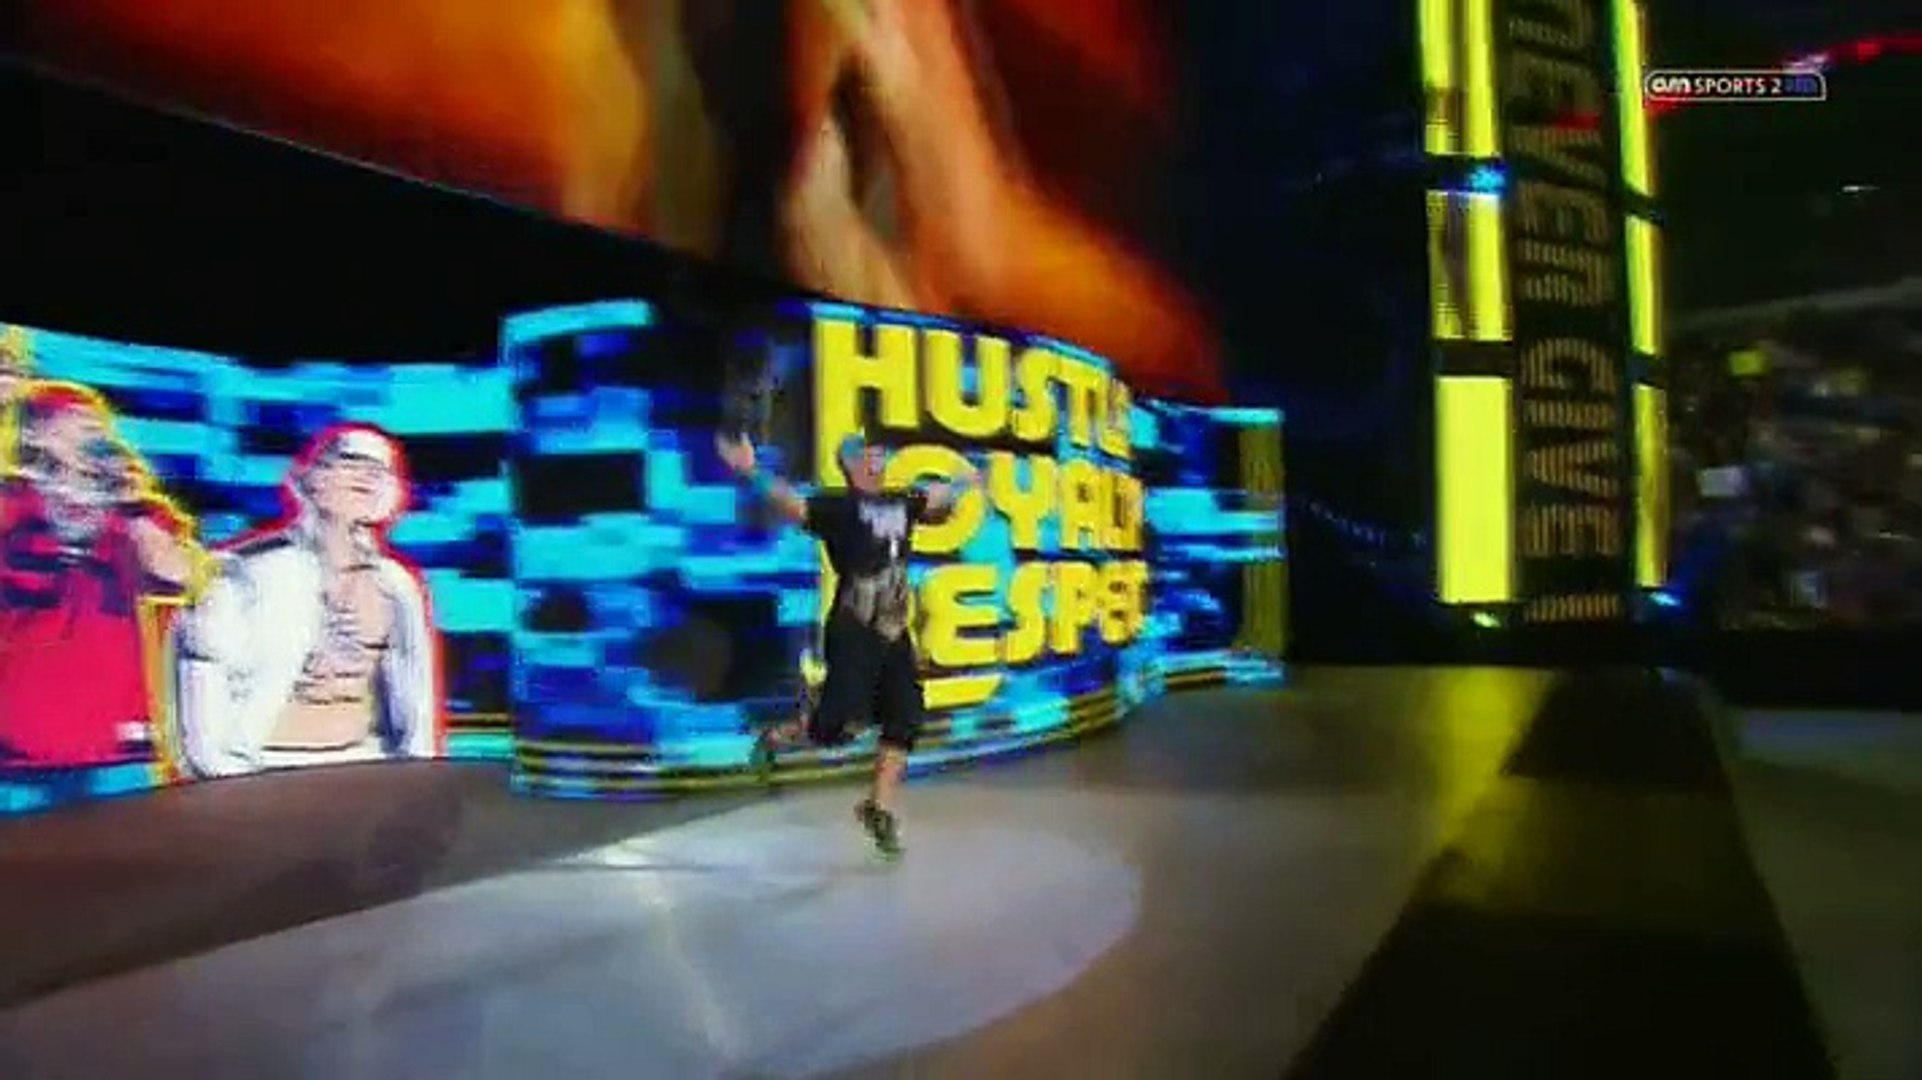 WWE Bottom Line - 5/30/2015 - 30th May 2015 - HDTV Watch Online